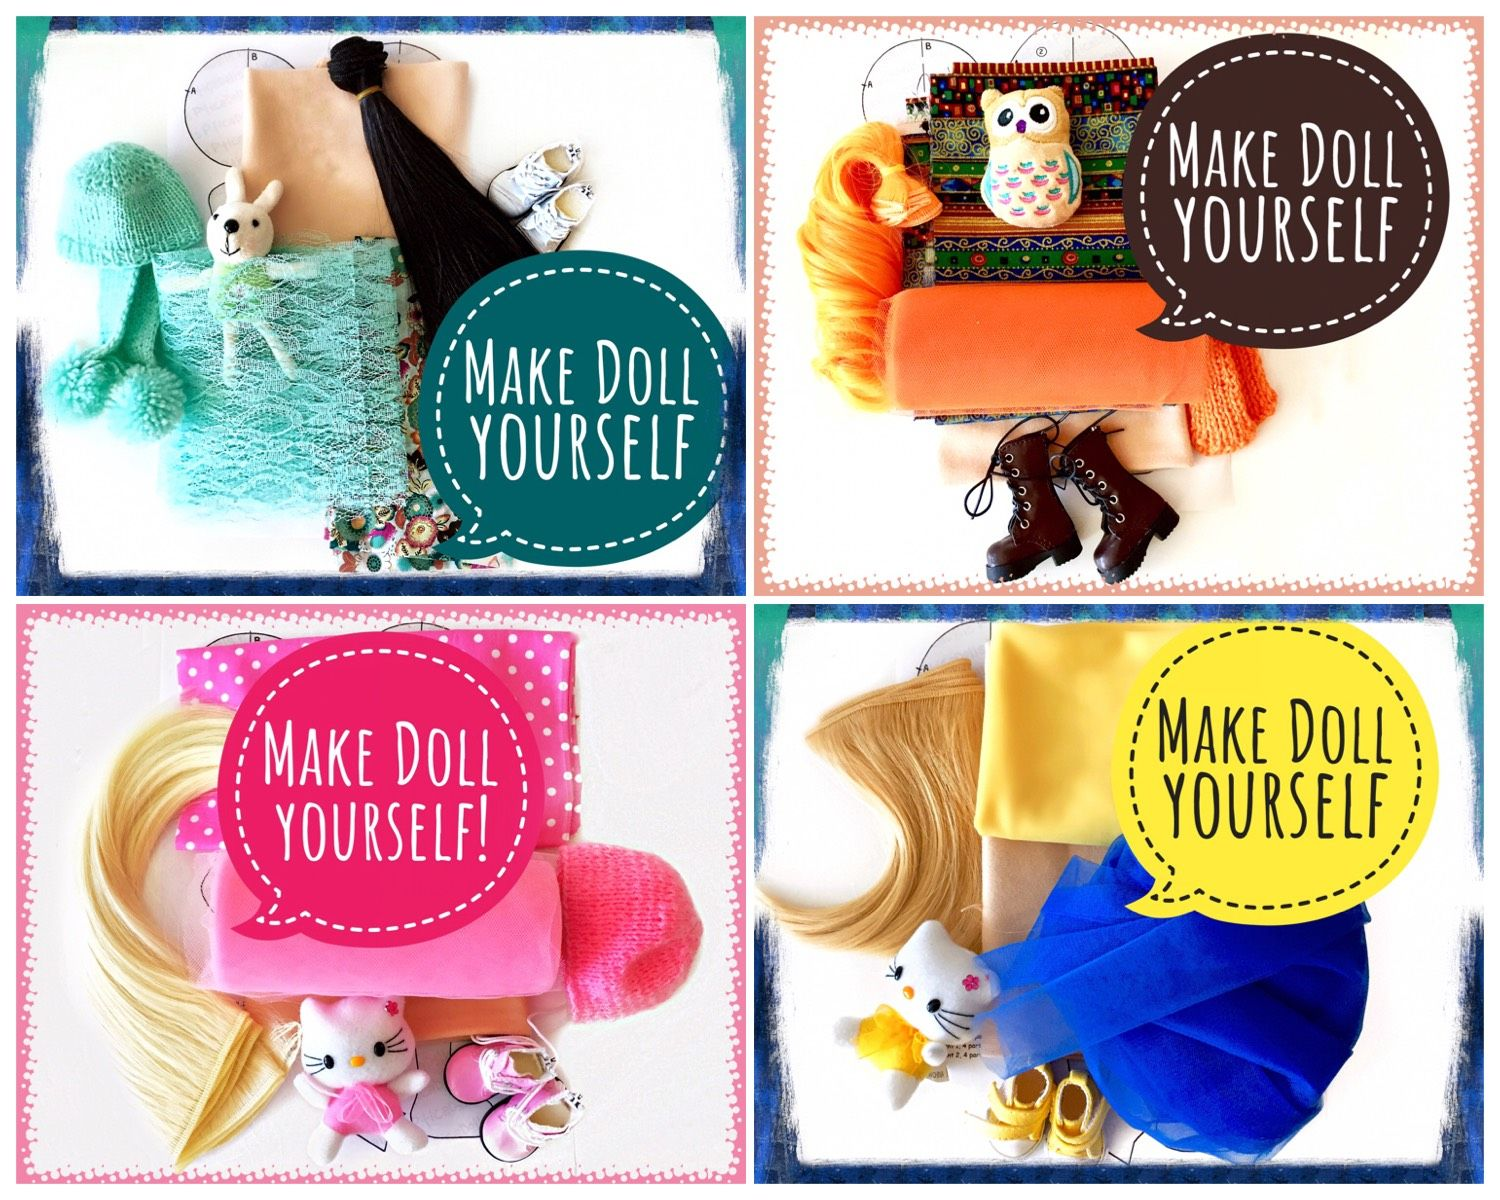 Make a doll yourself! by PticaDolls